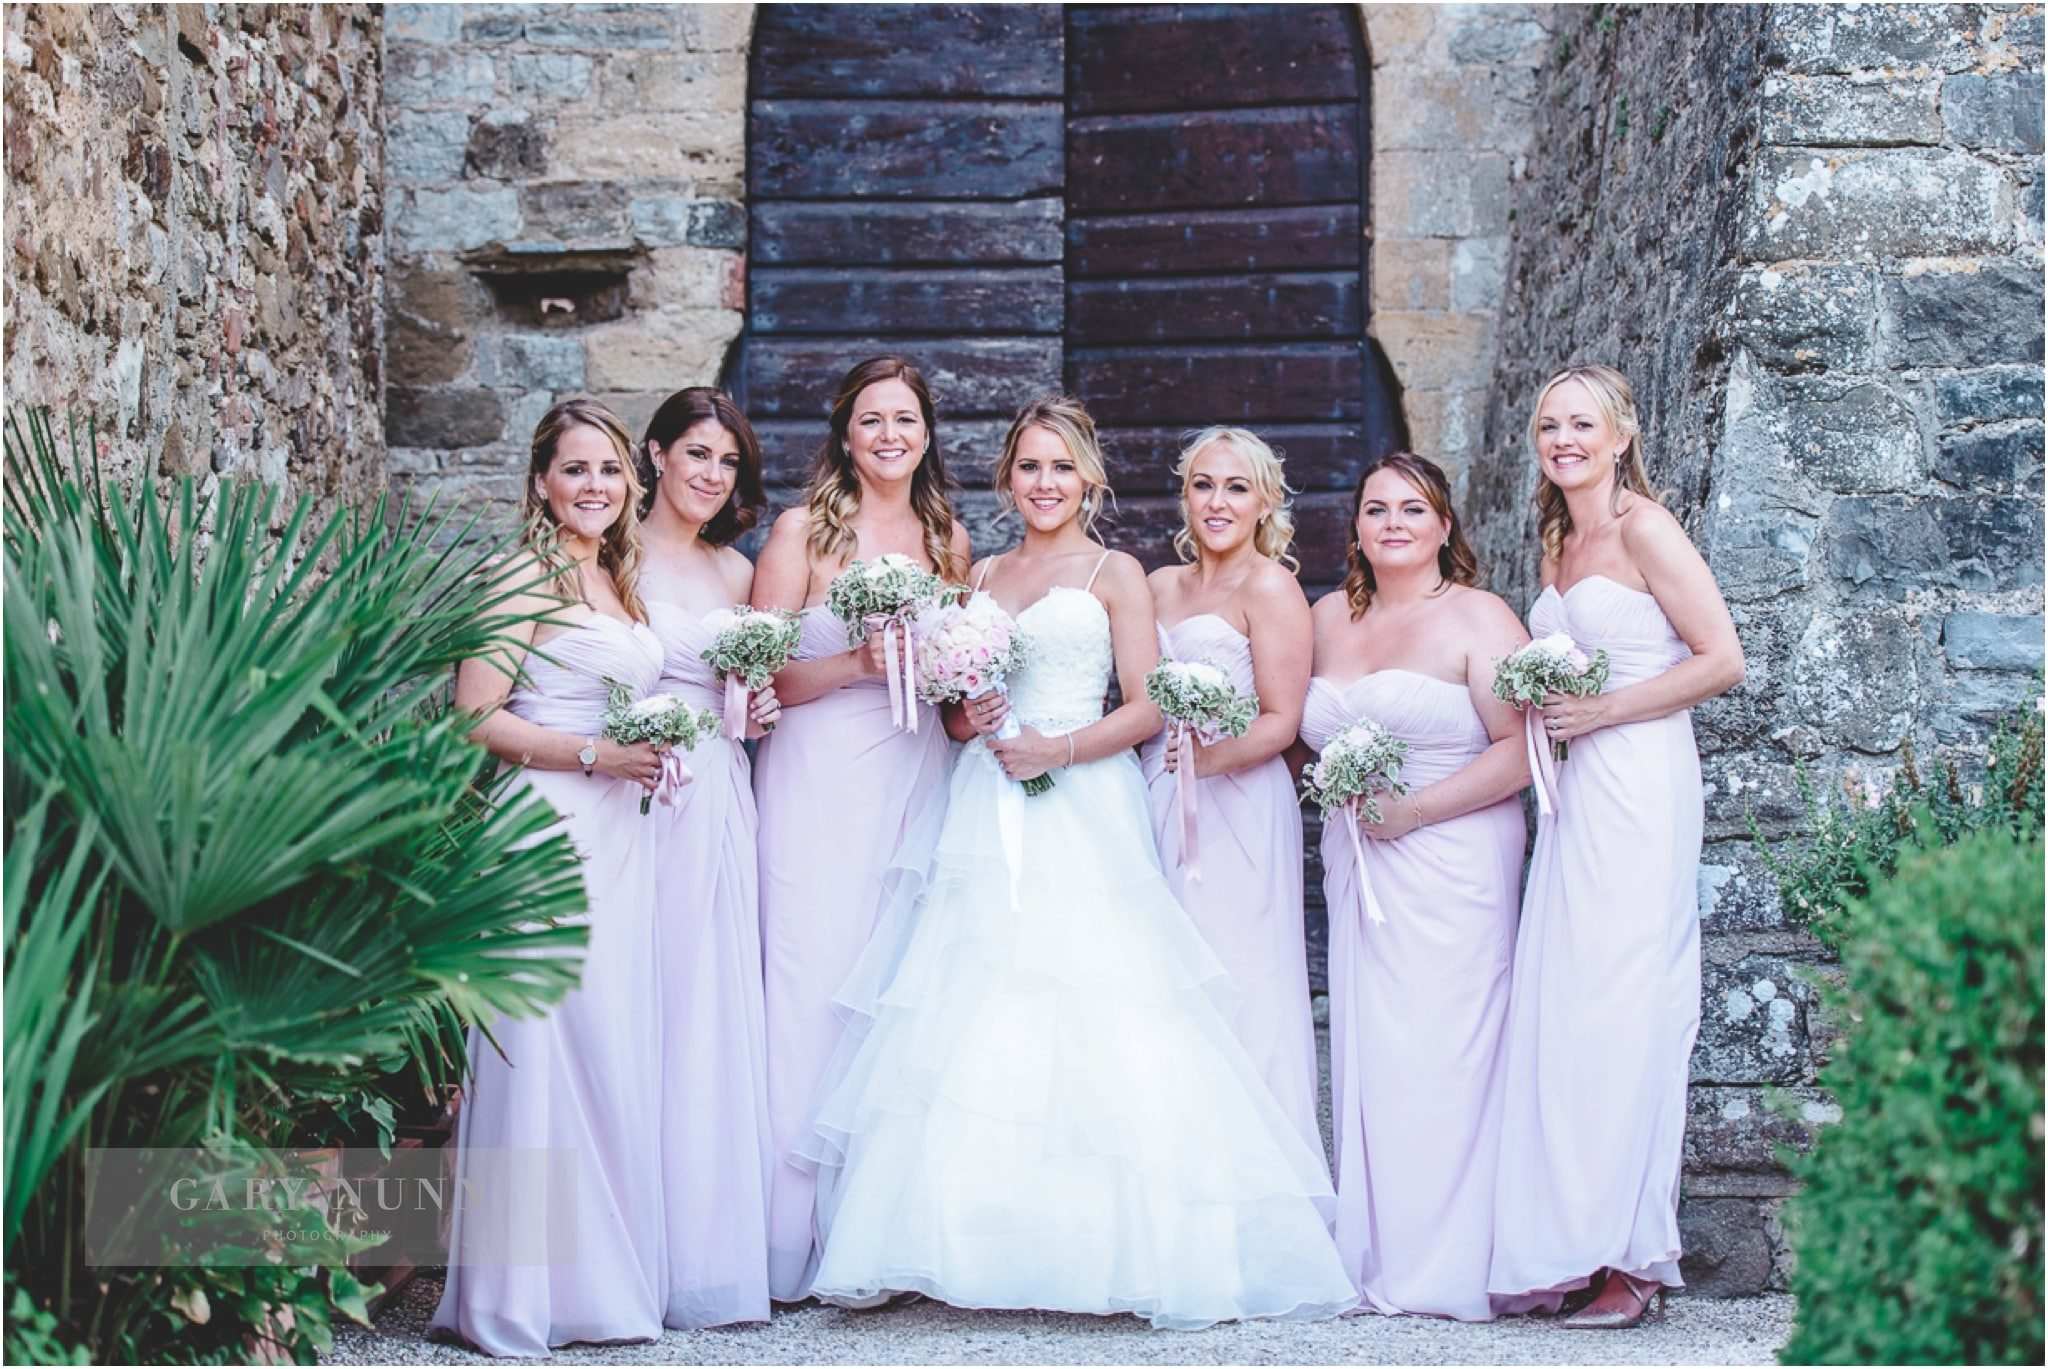 How Much Do Wedding Photographers Cost.How Much Does A Wedding Photographer Cost Wedding Photography